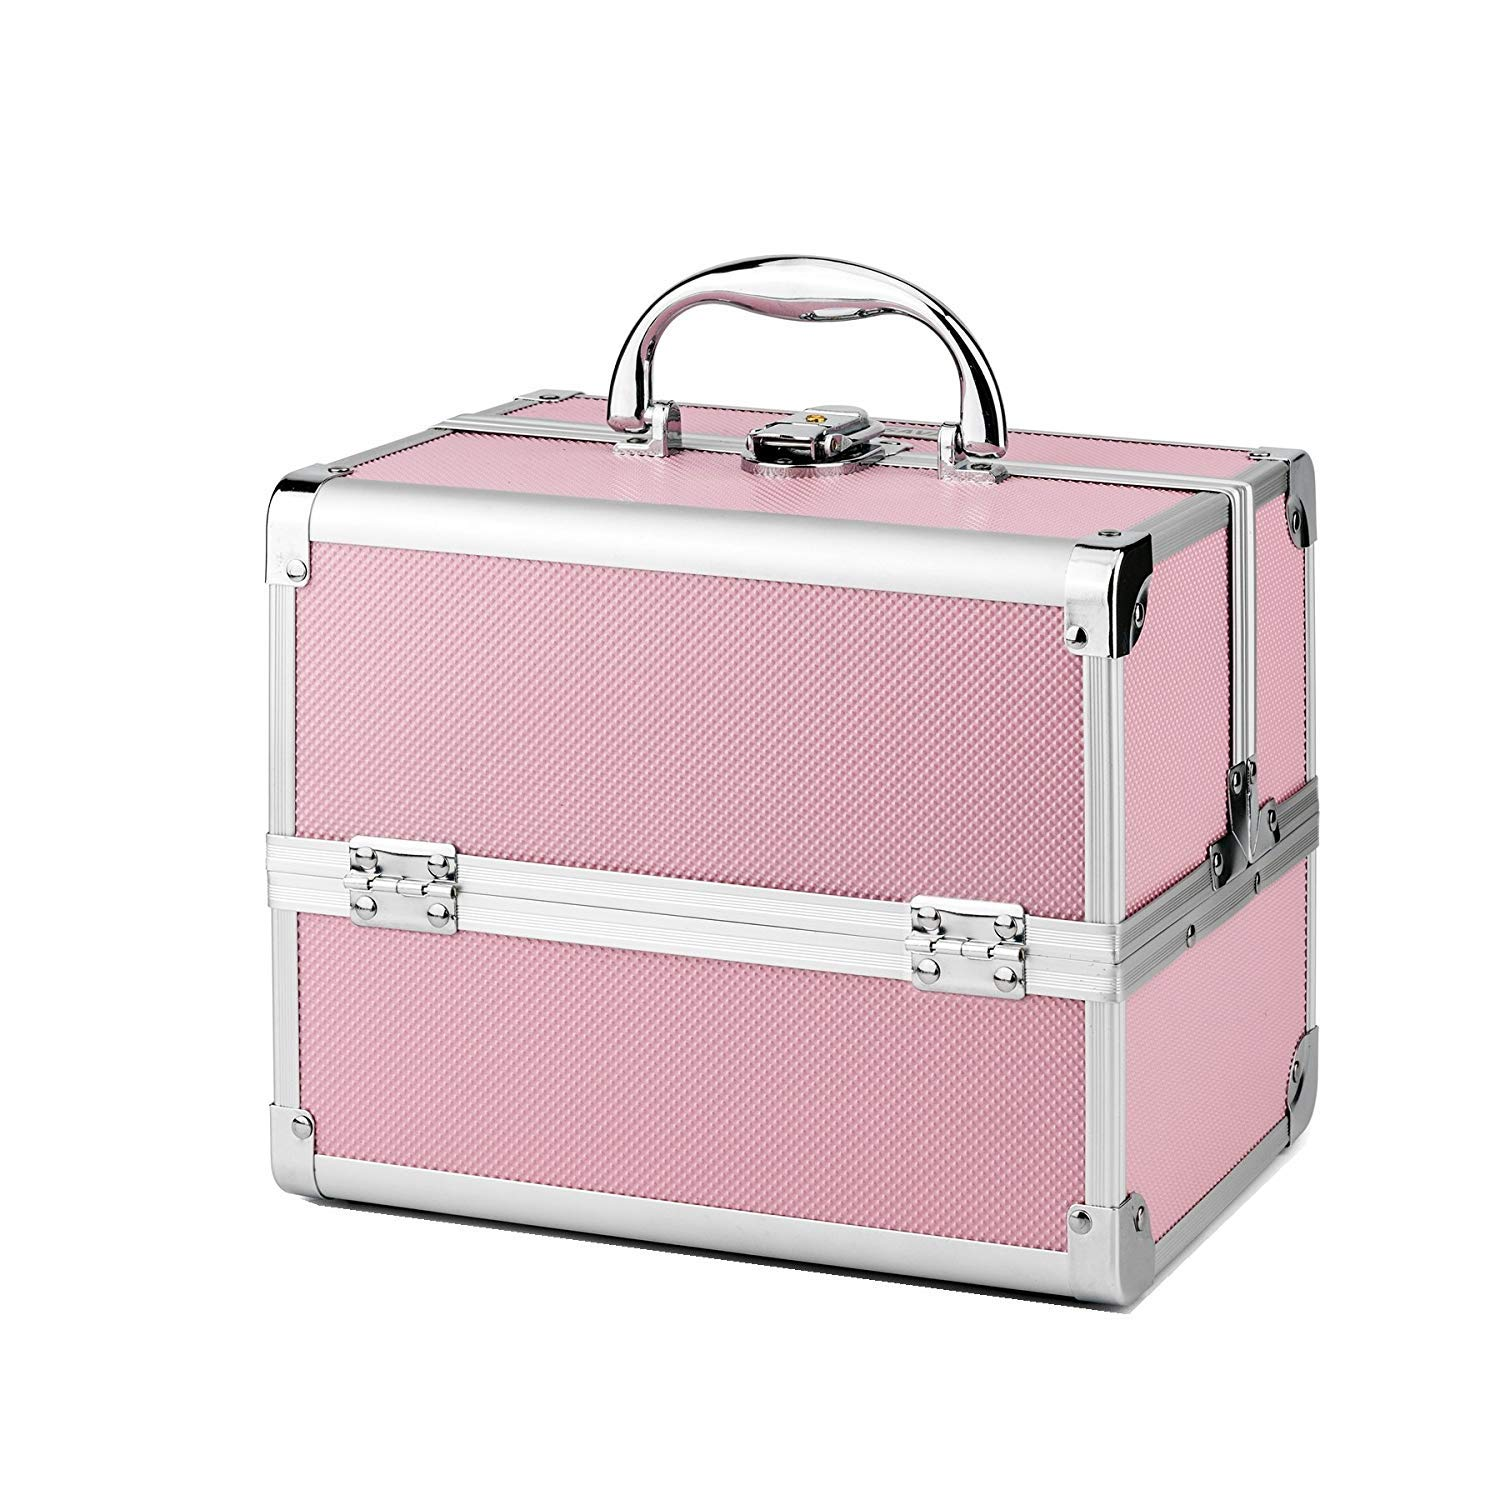 d2a661bb9e9c8e AMASAVA Makeup Case, 3 Tiers Vanity Case Makeup Box with Mirror  Professional Makeup Train Case Storage Beauty Box Cosmetic Case Jewelry  Organiser: ...